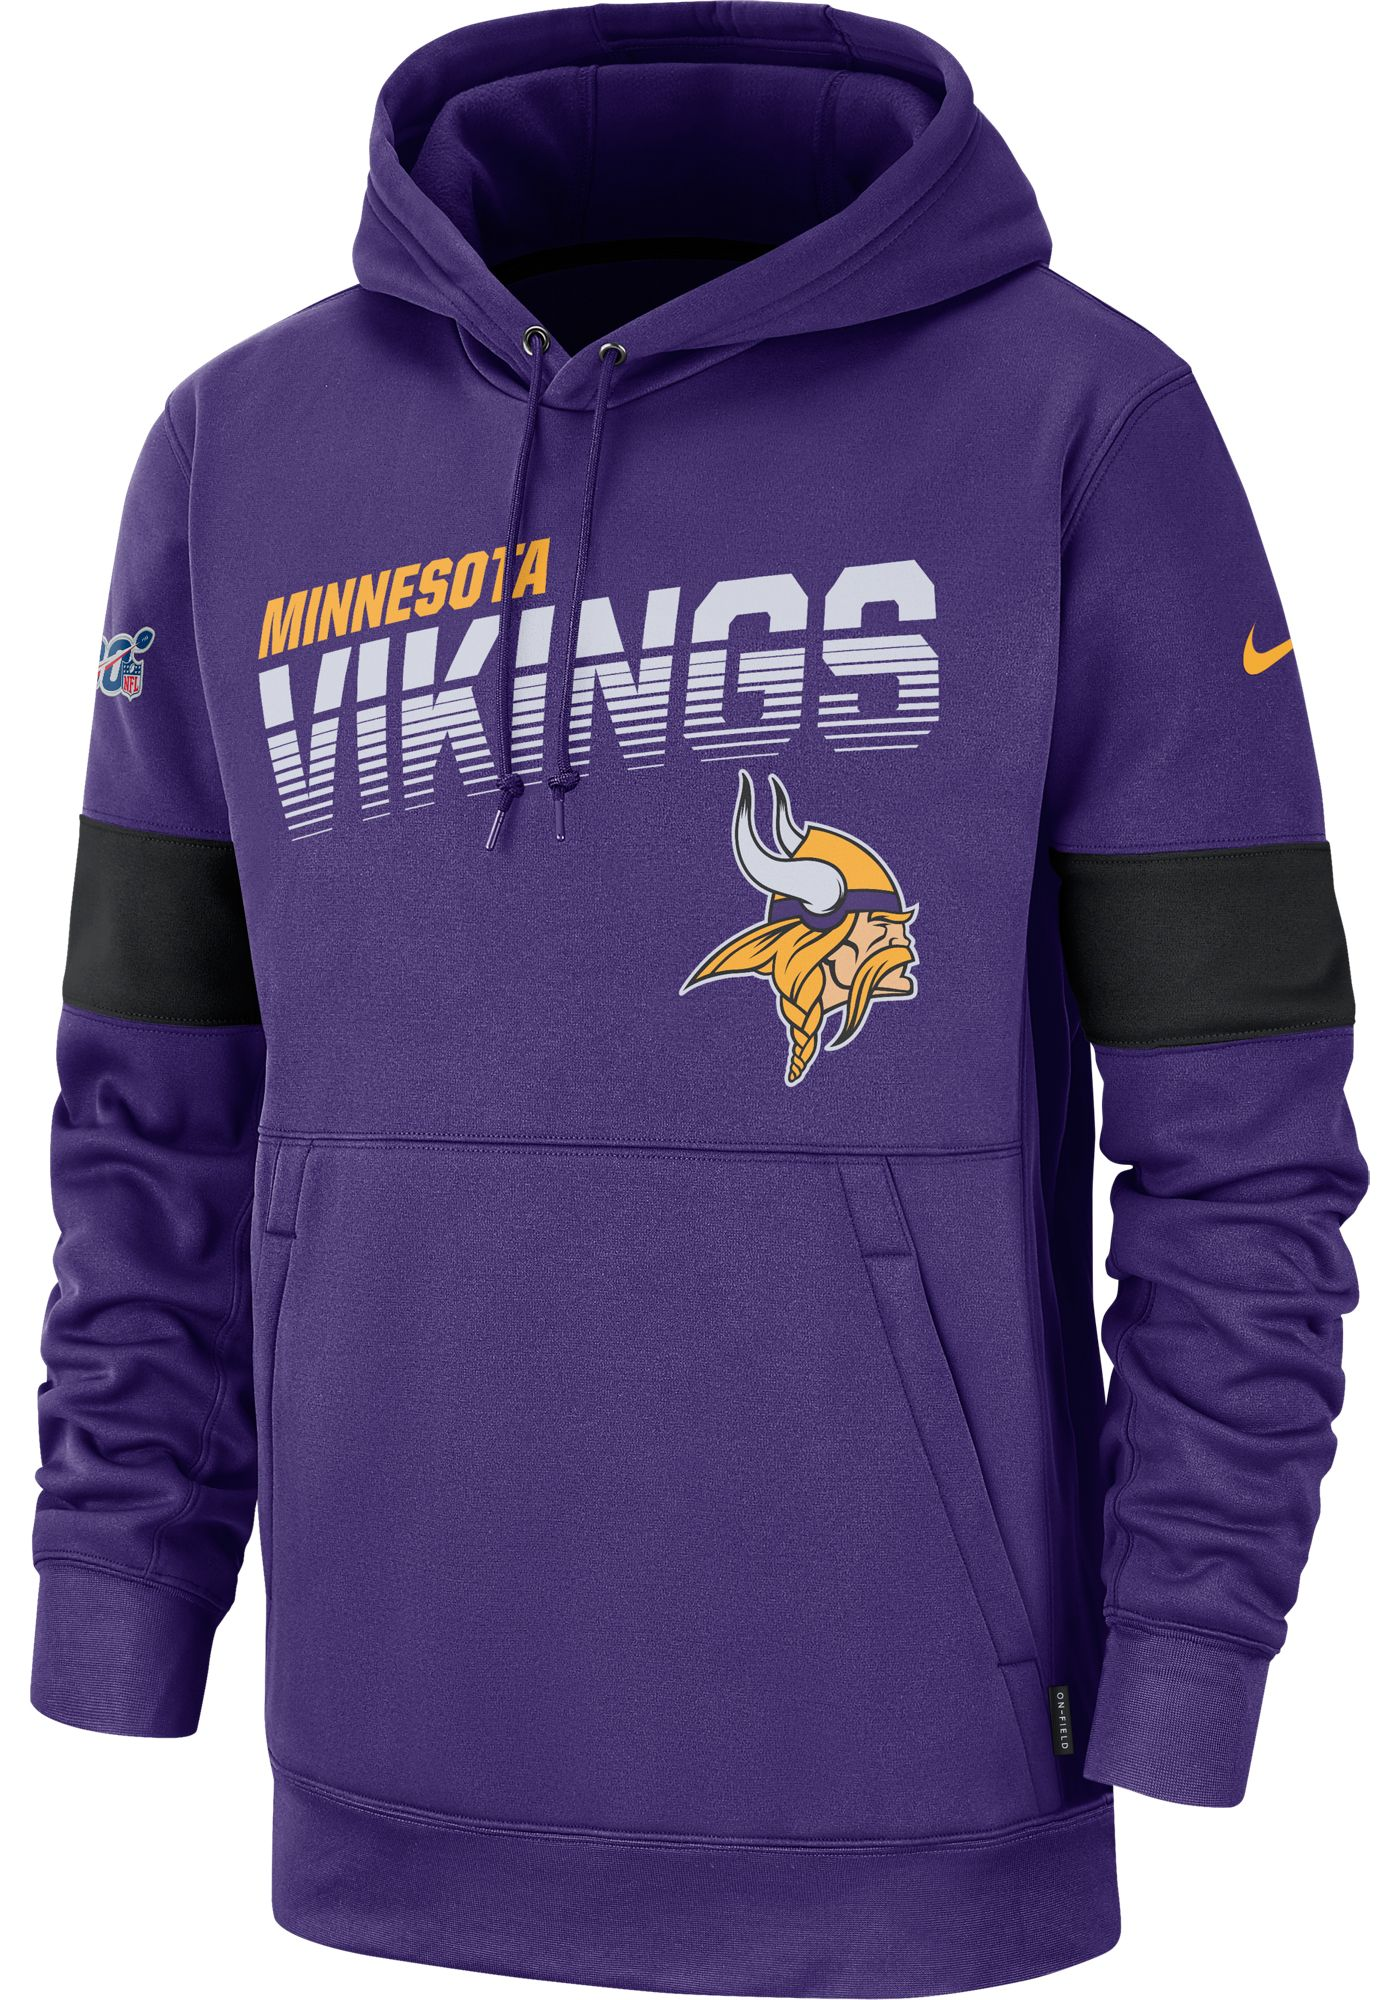 Nike Men's Minnesota Vikings 100th Sideline Therma-FIT Purple Pullover Hoodie